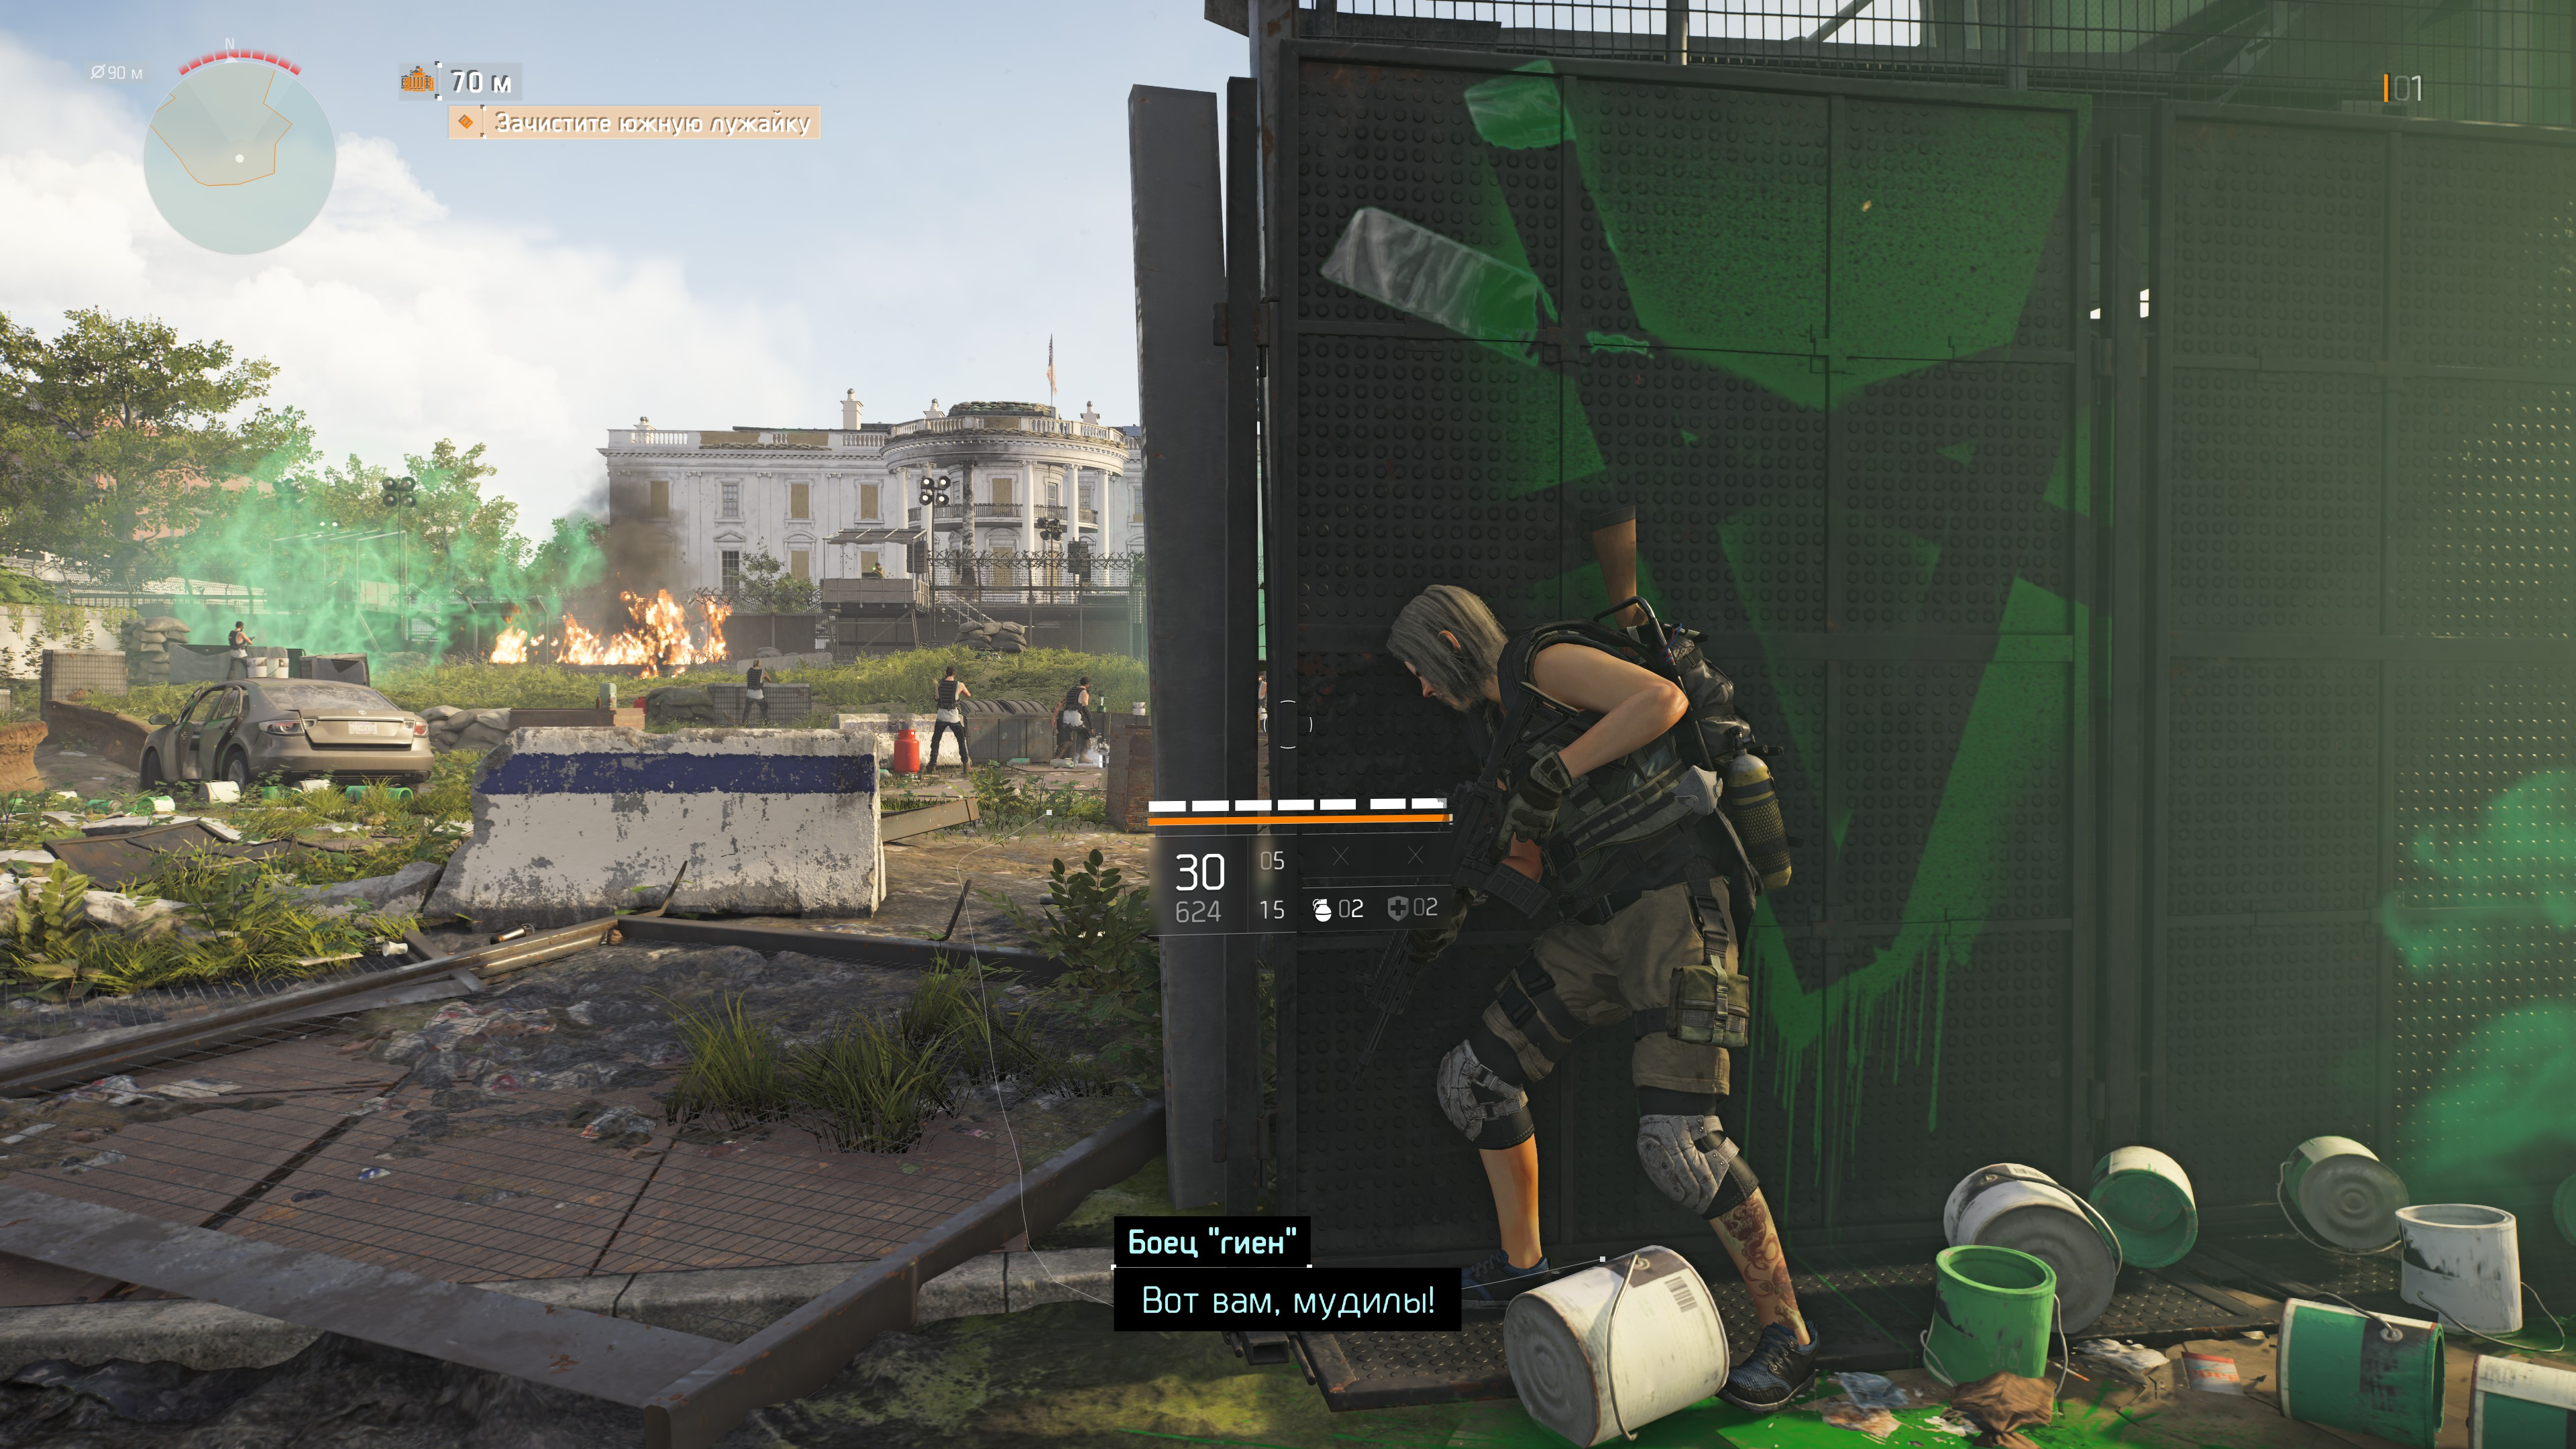 Tom Clancy's The Division® 22020-3-1-5-49-22.jpg - Tom Clancy's The Division 2